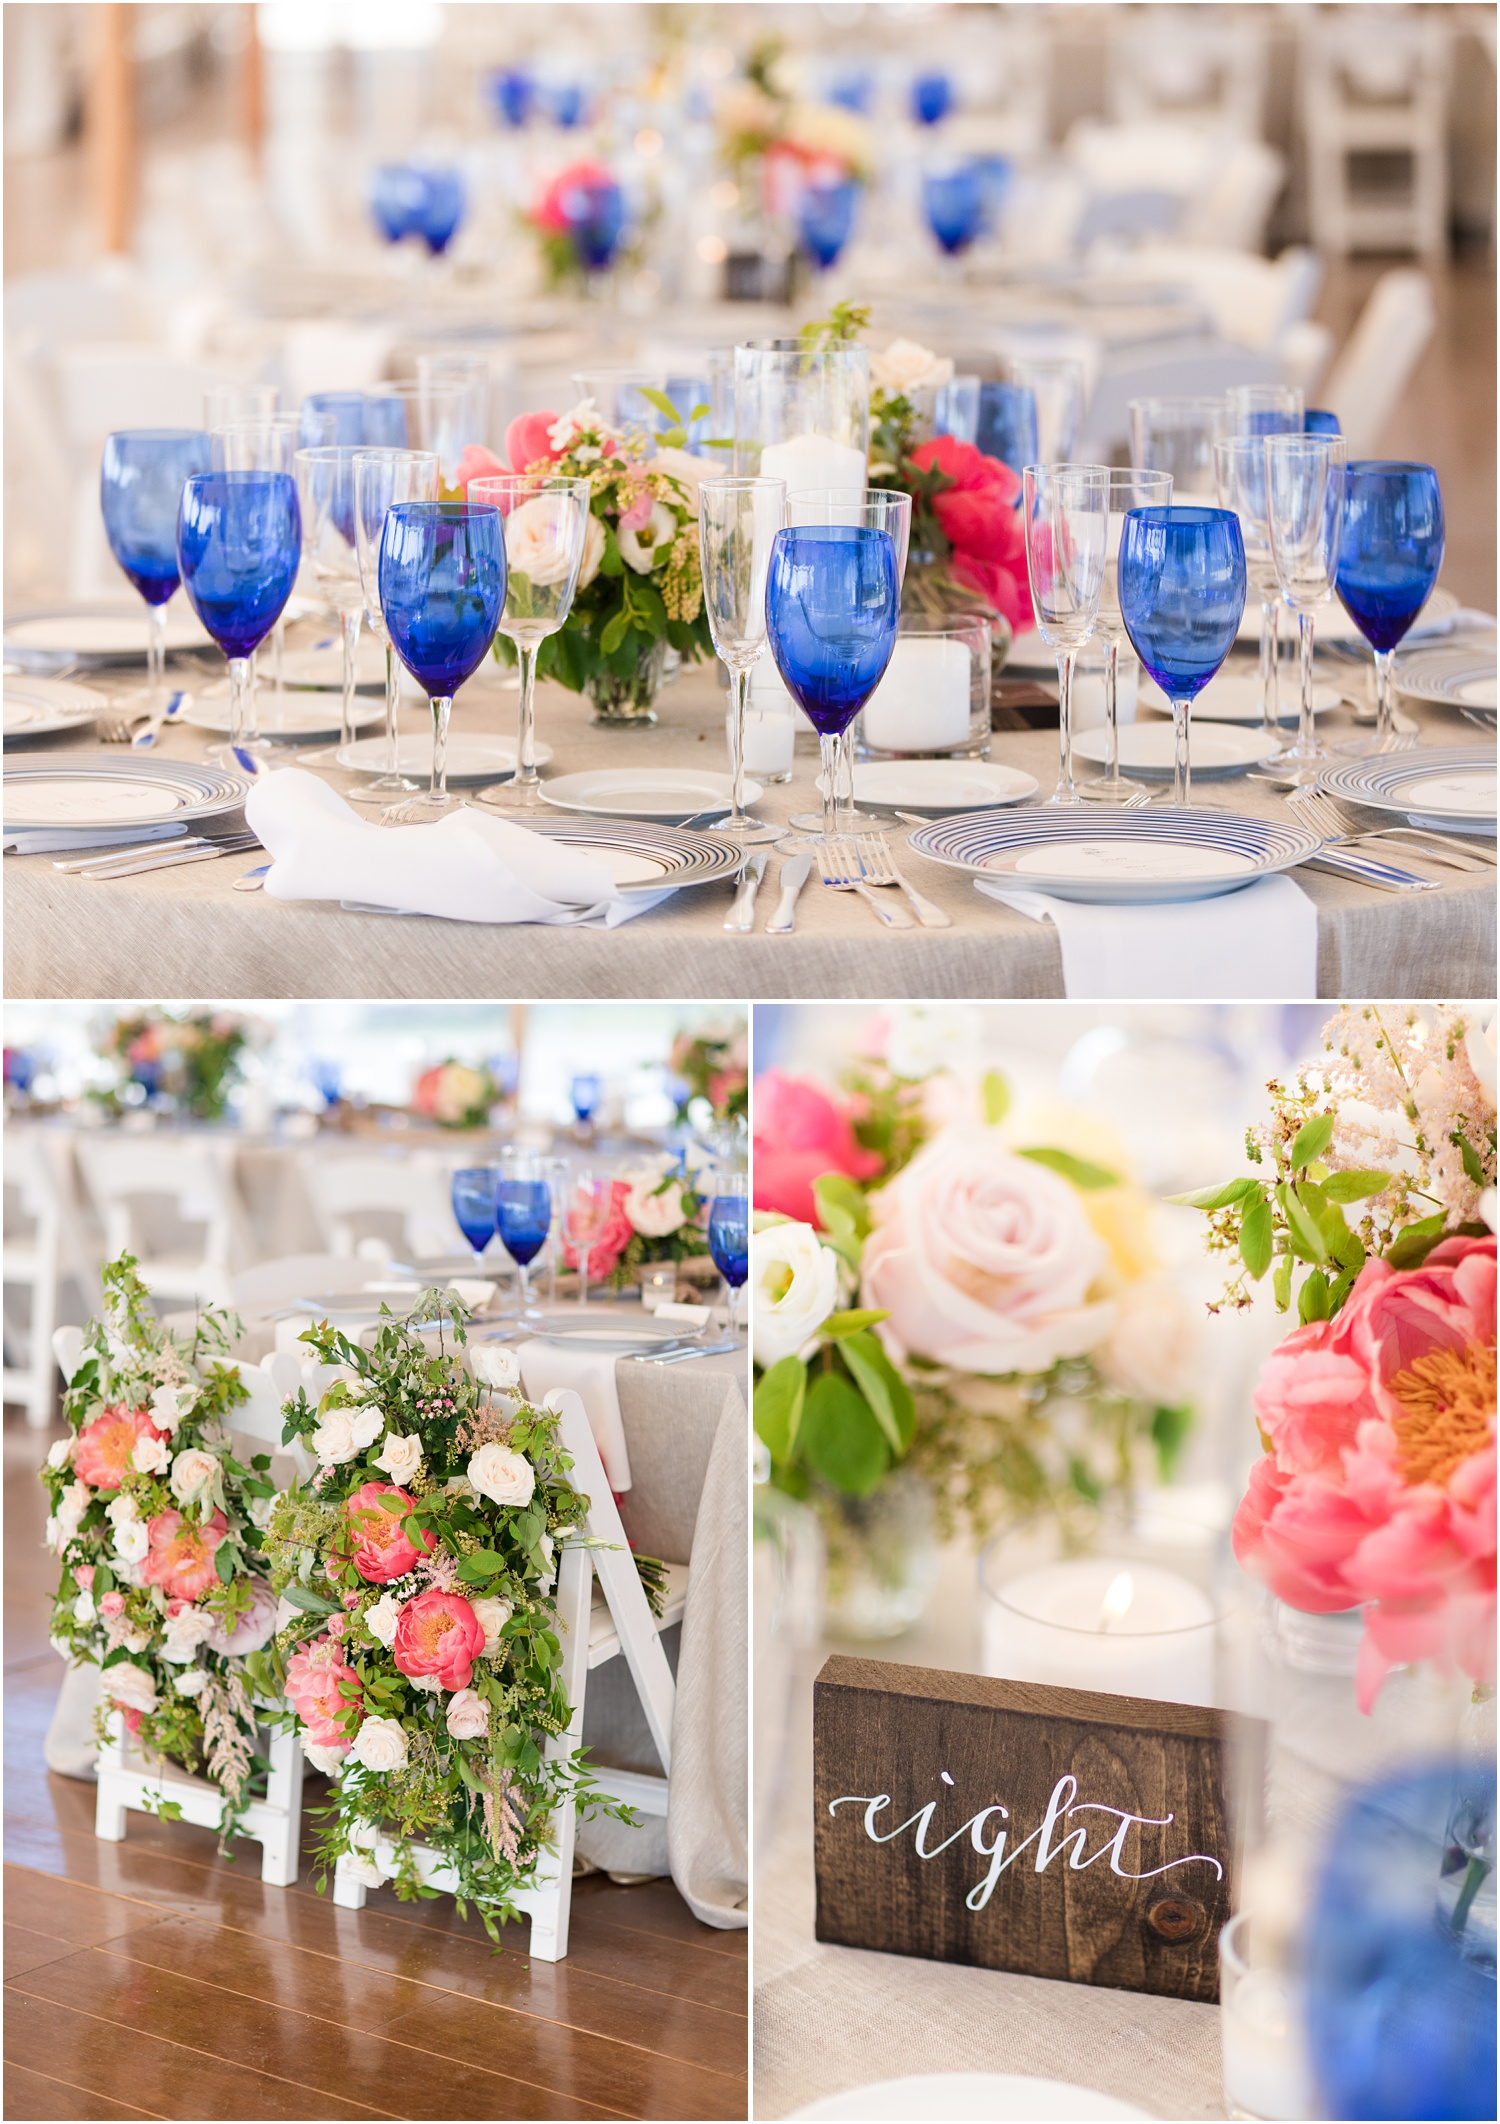 Photos of tented reception decor with blue glassware by Faye and Renee at Mantoloking Yacht Club.